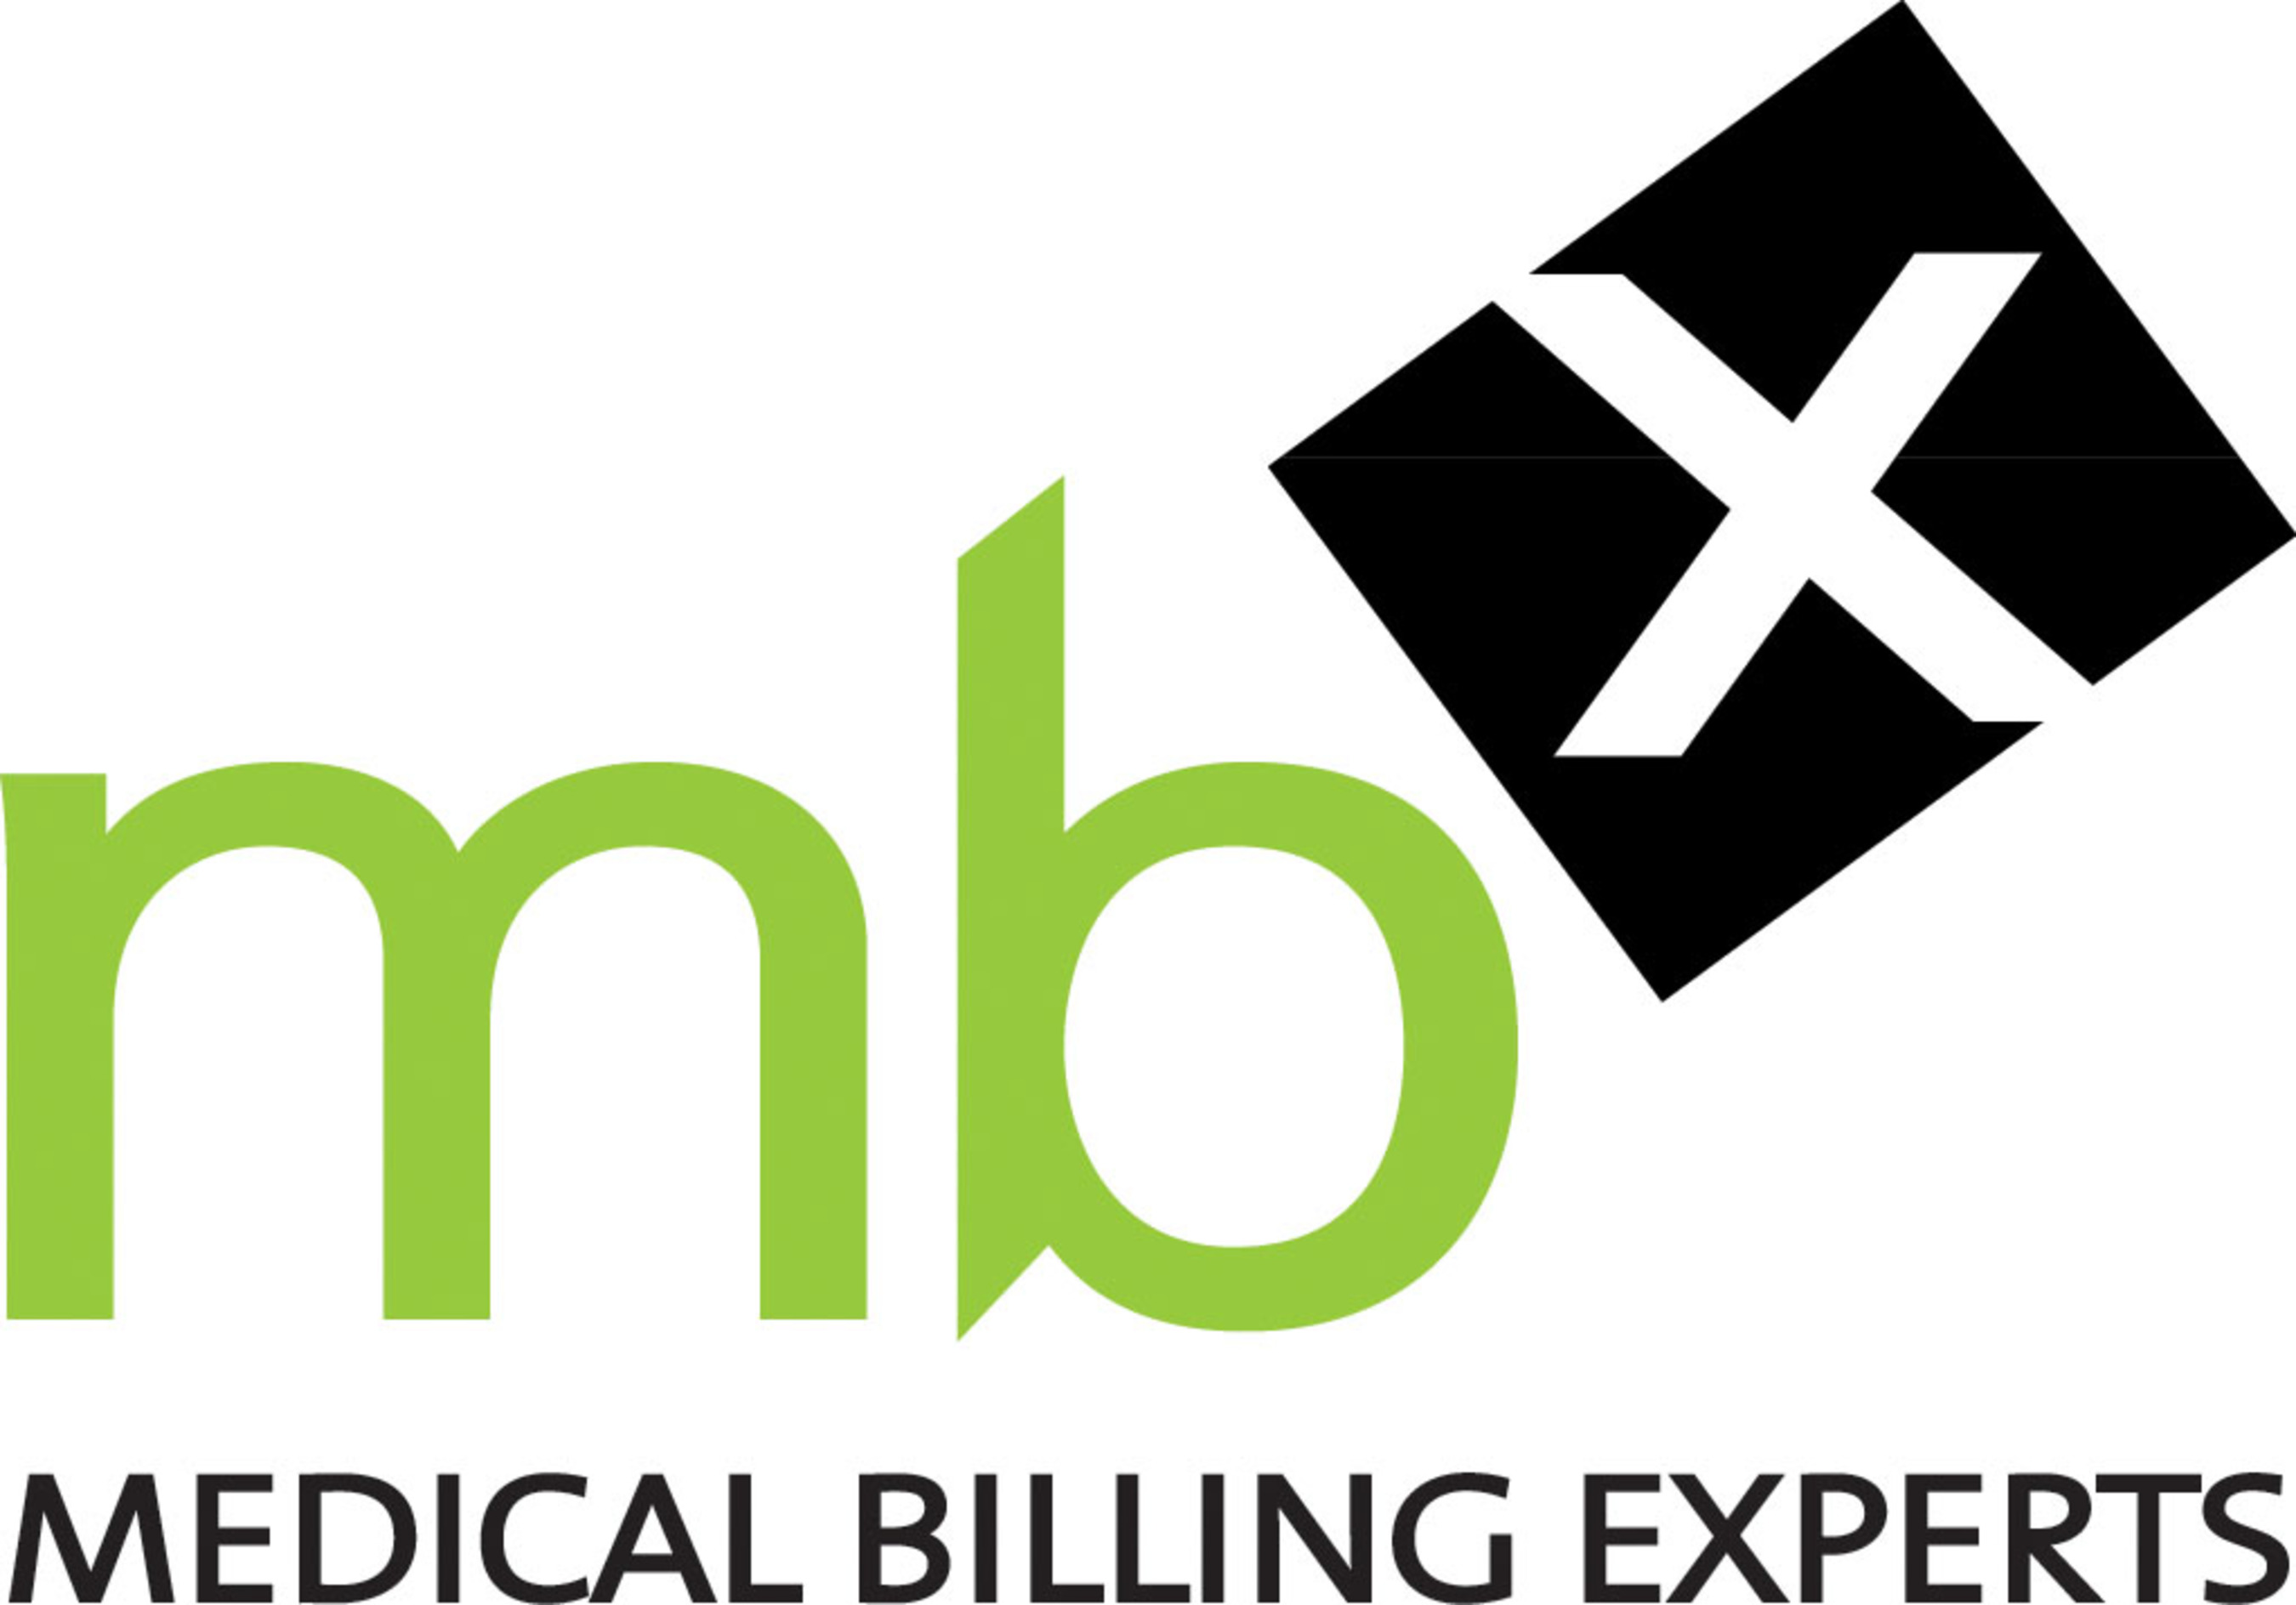 Mountain Medical Physician Specialists selects MBX - Medical Billing Experts LLC as its medical billing provider